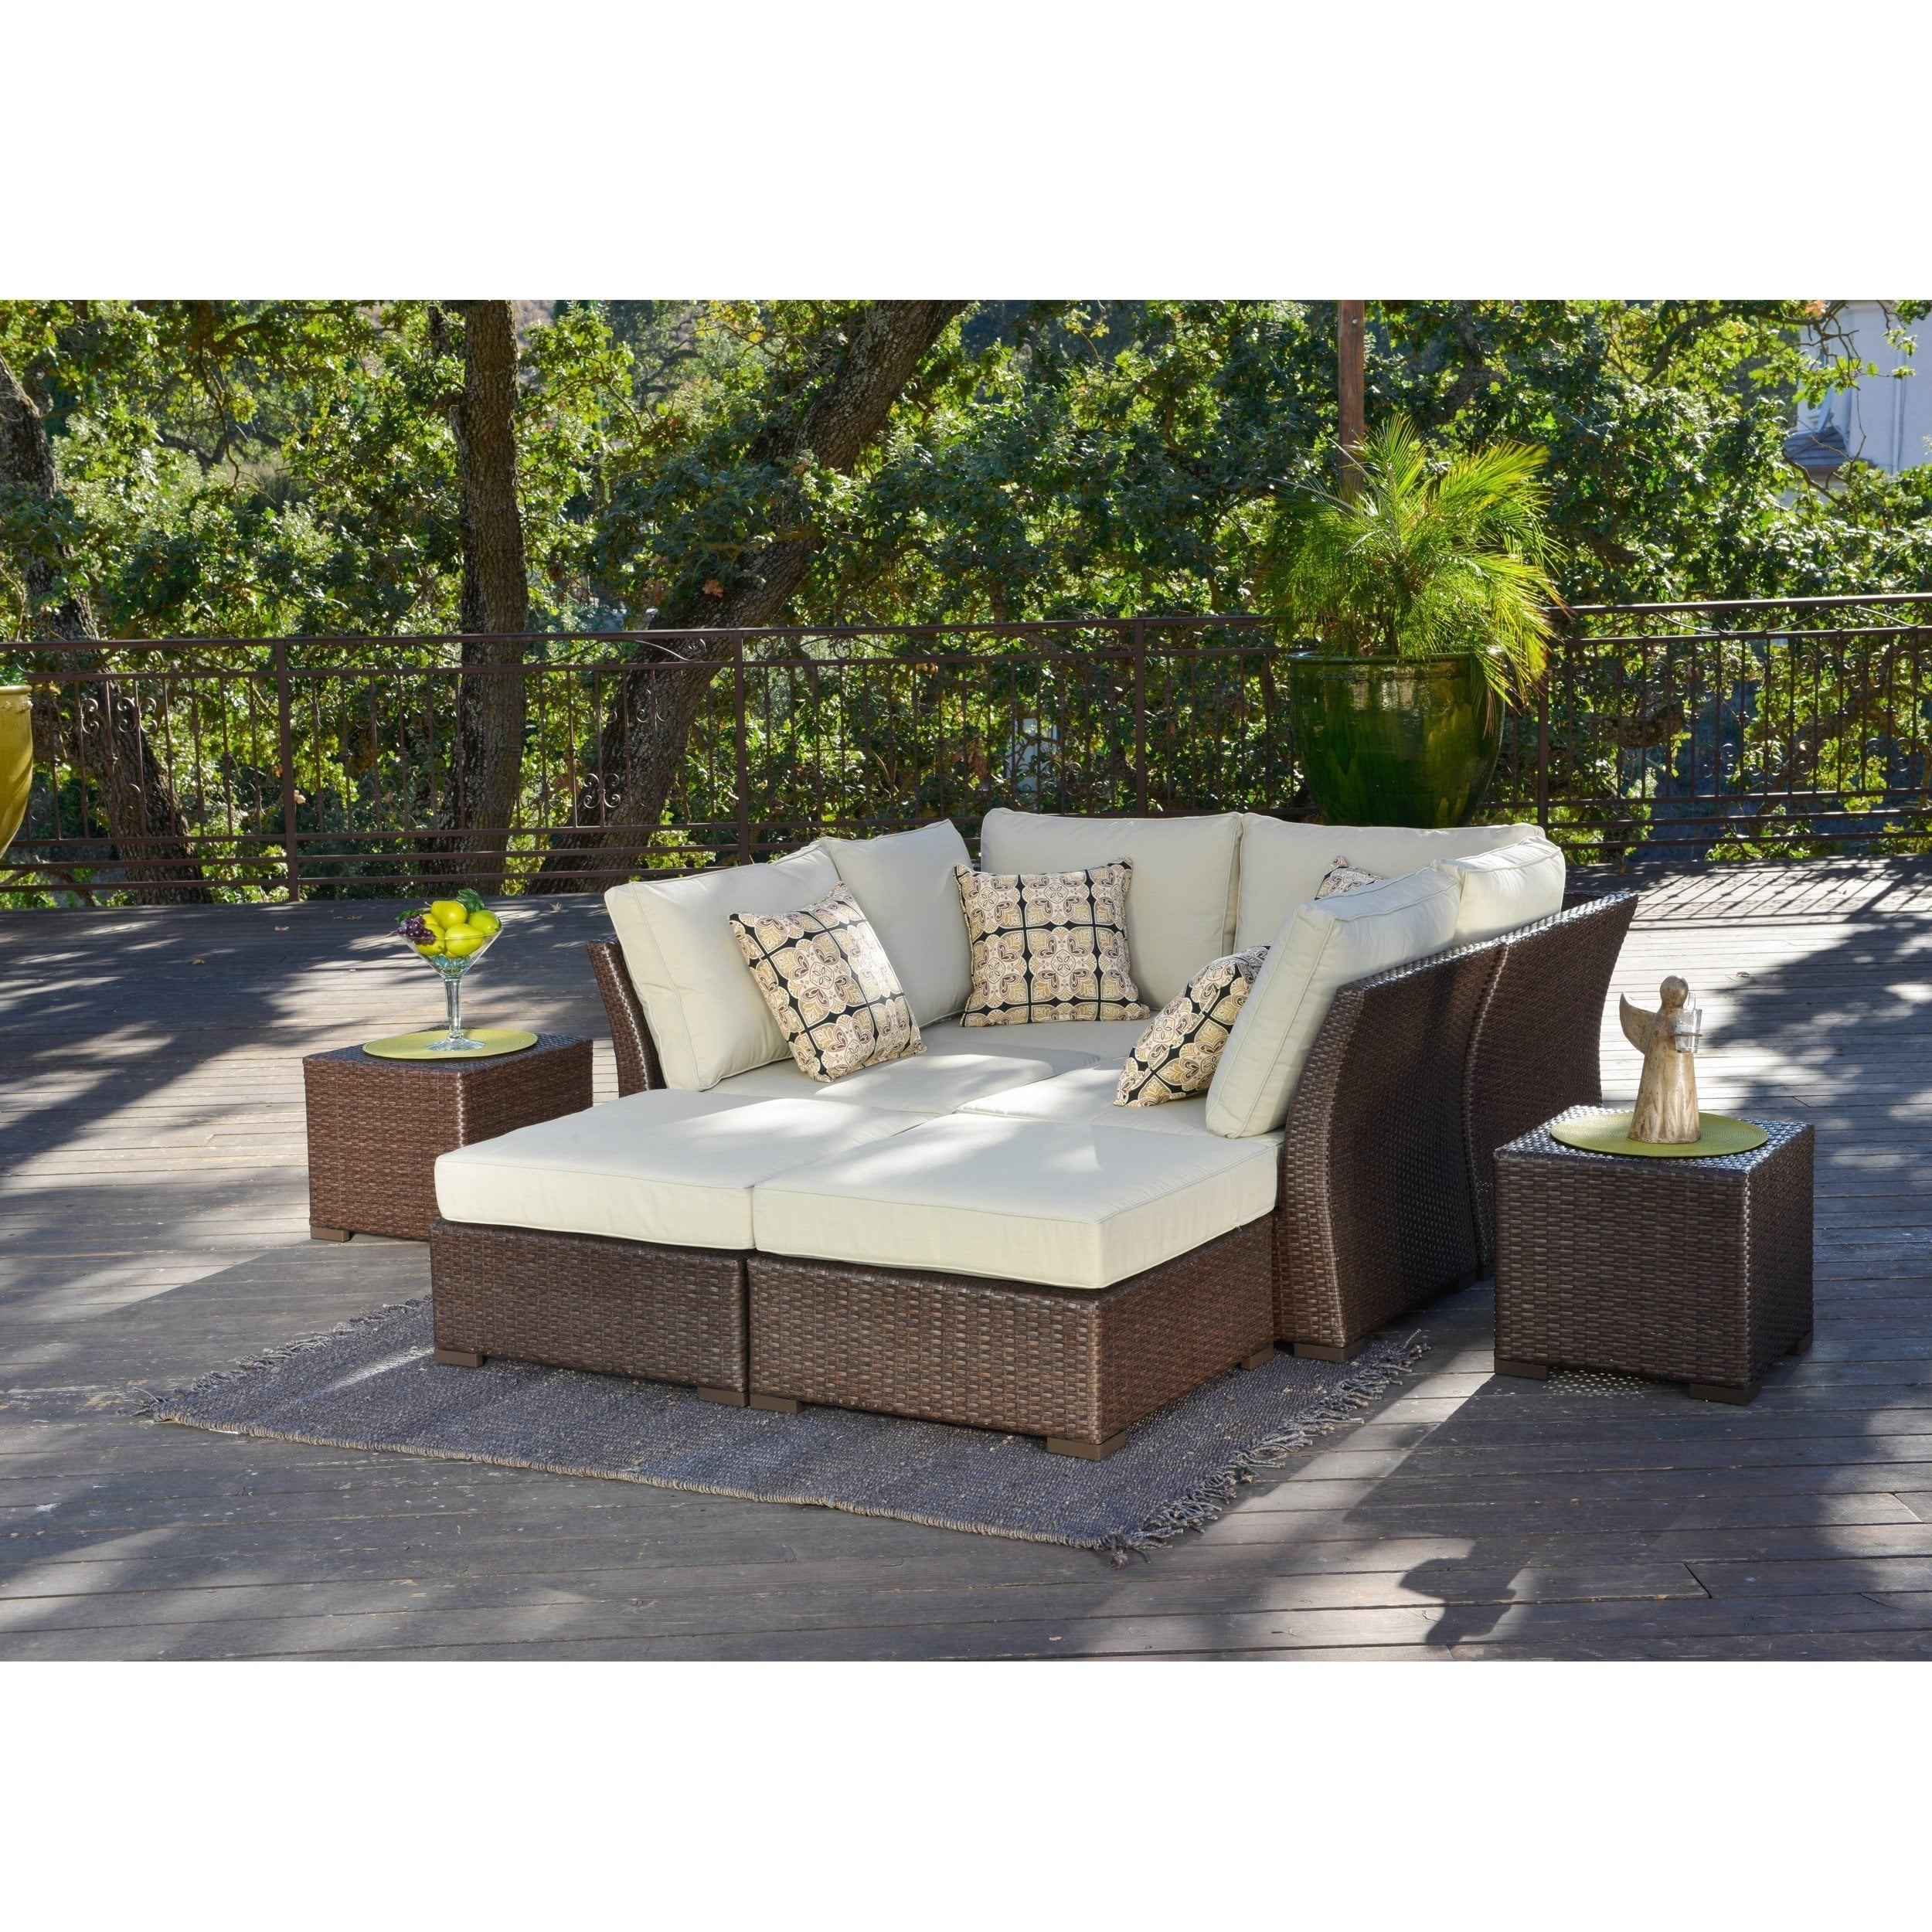 Shop Corvus Oreanne 8-piece Brown Wicker Patio Furniture Set - On Sale -  Free Shipping Today - Traveller Location - 9018067